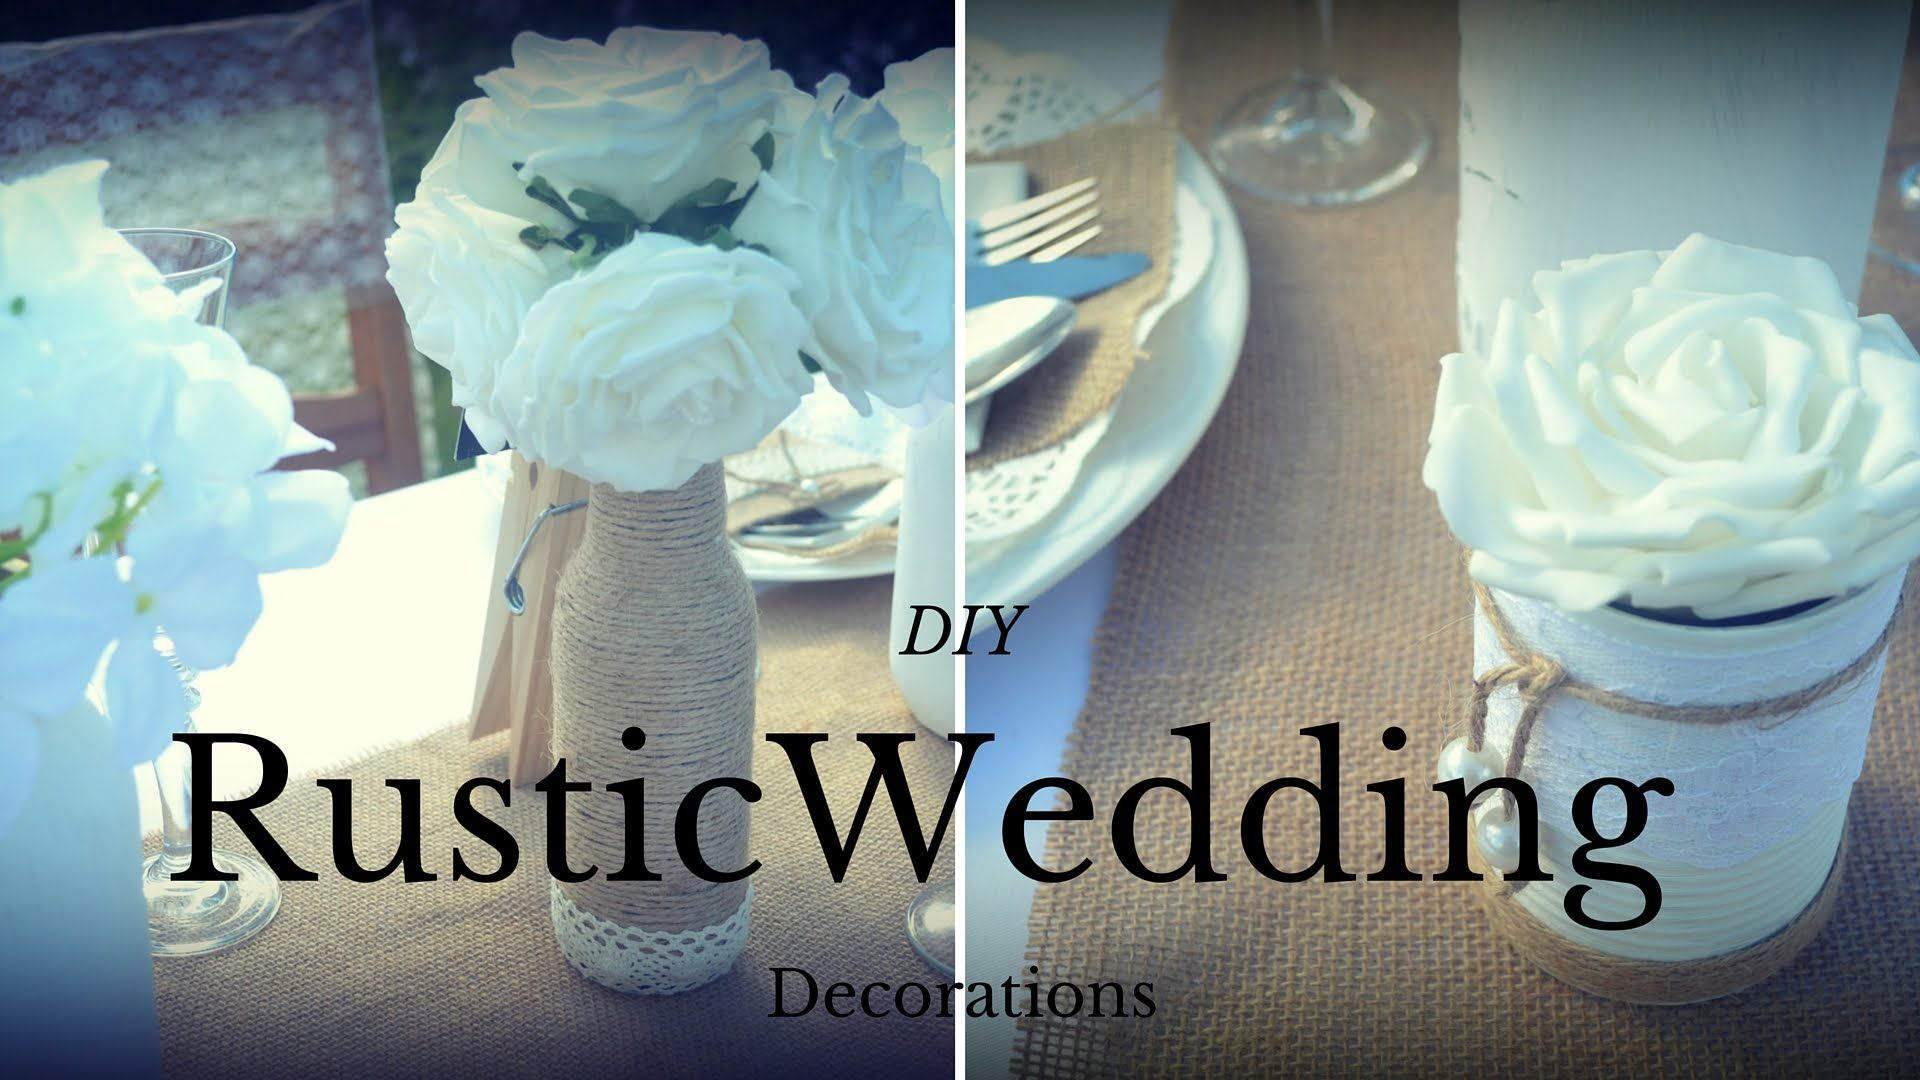 Diy decorations for wedding  Wedding Rustic Decorations DIY wedding centrepieces Recycled Craft